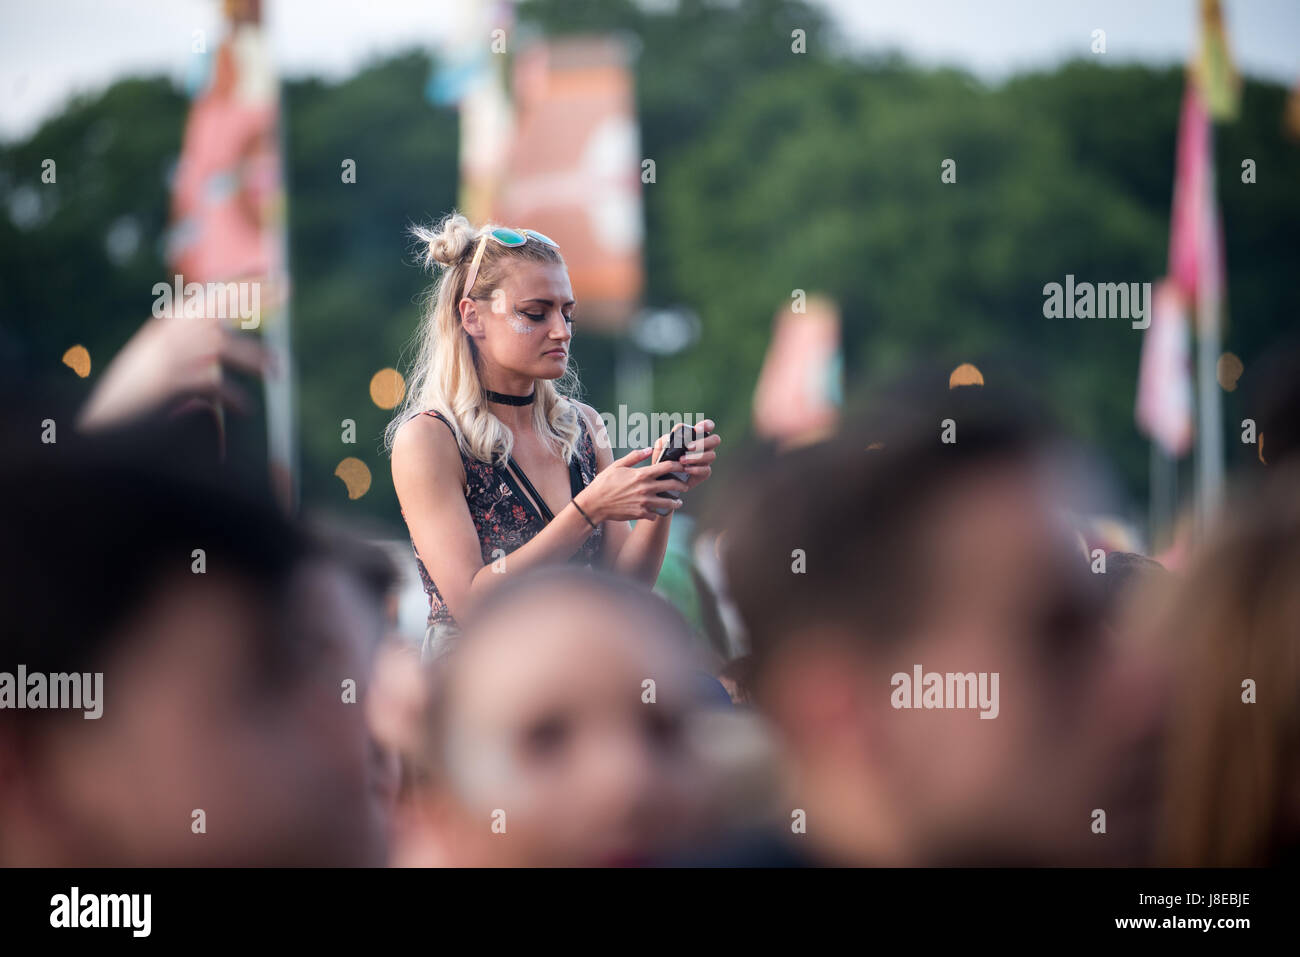 Southampton, Hampshire, United Kingdom. 28 May 2017. Common People Music Festival returns in 2017 to Southampton - Stock Image